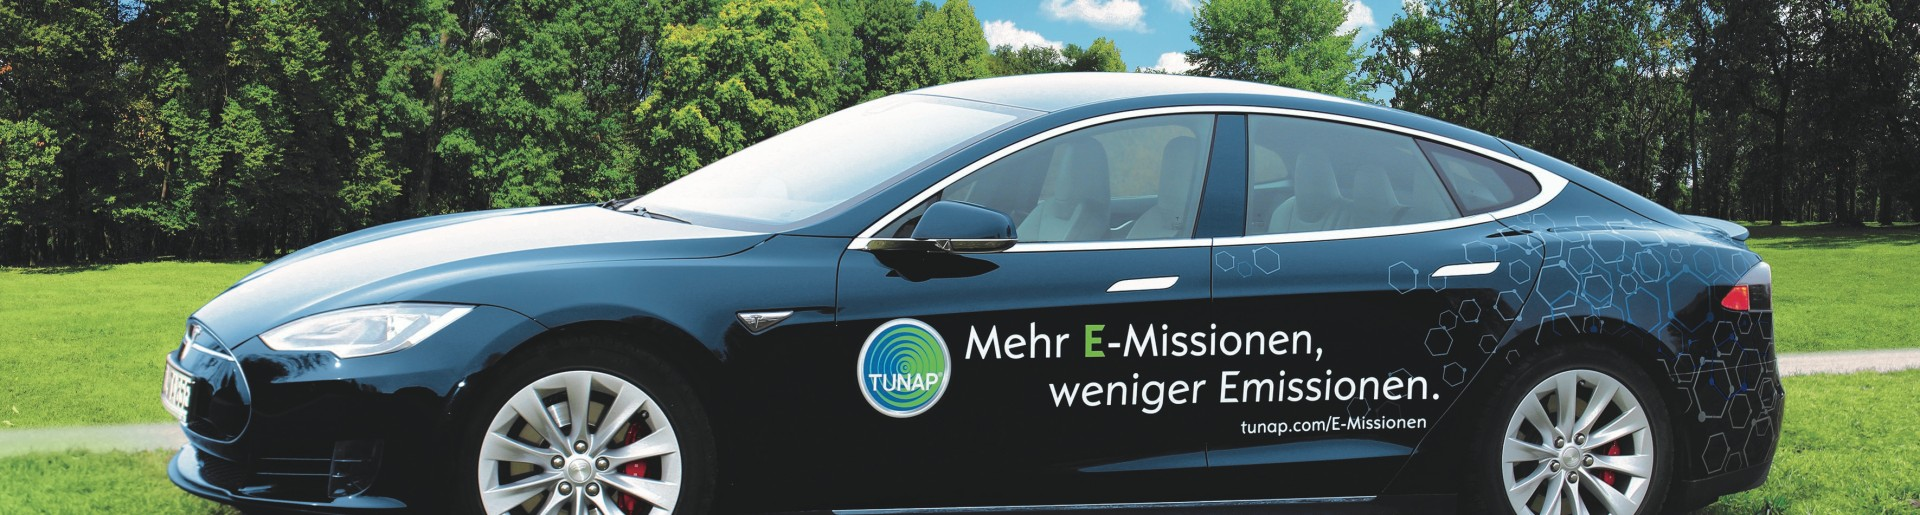 Side view of a dark blue sports car with white lettering and a TUNAP logo on a green meadow